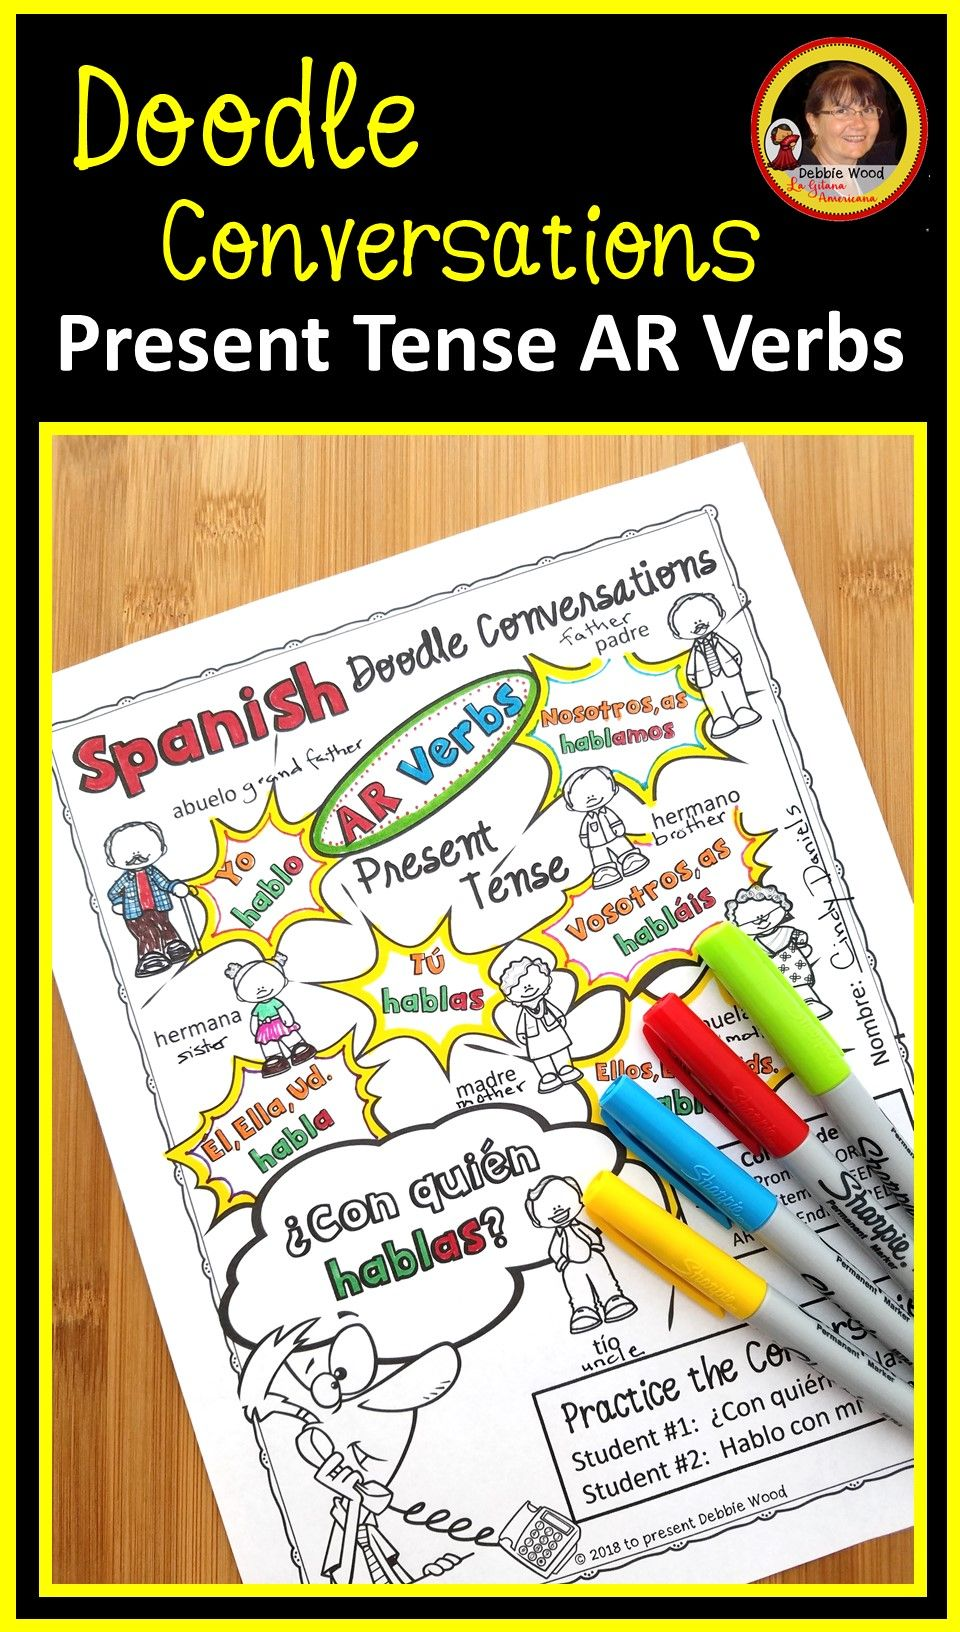 Teach Spanish Present Tense With These Fun And Engaging Doodle Conversation Worksheets And Cards Spanish Lessons For Kids Teaching Spanish Learning Spanish [ 1632 x 960 Pixel ]